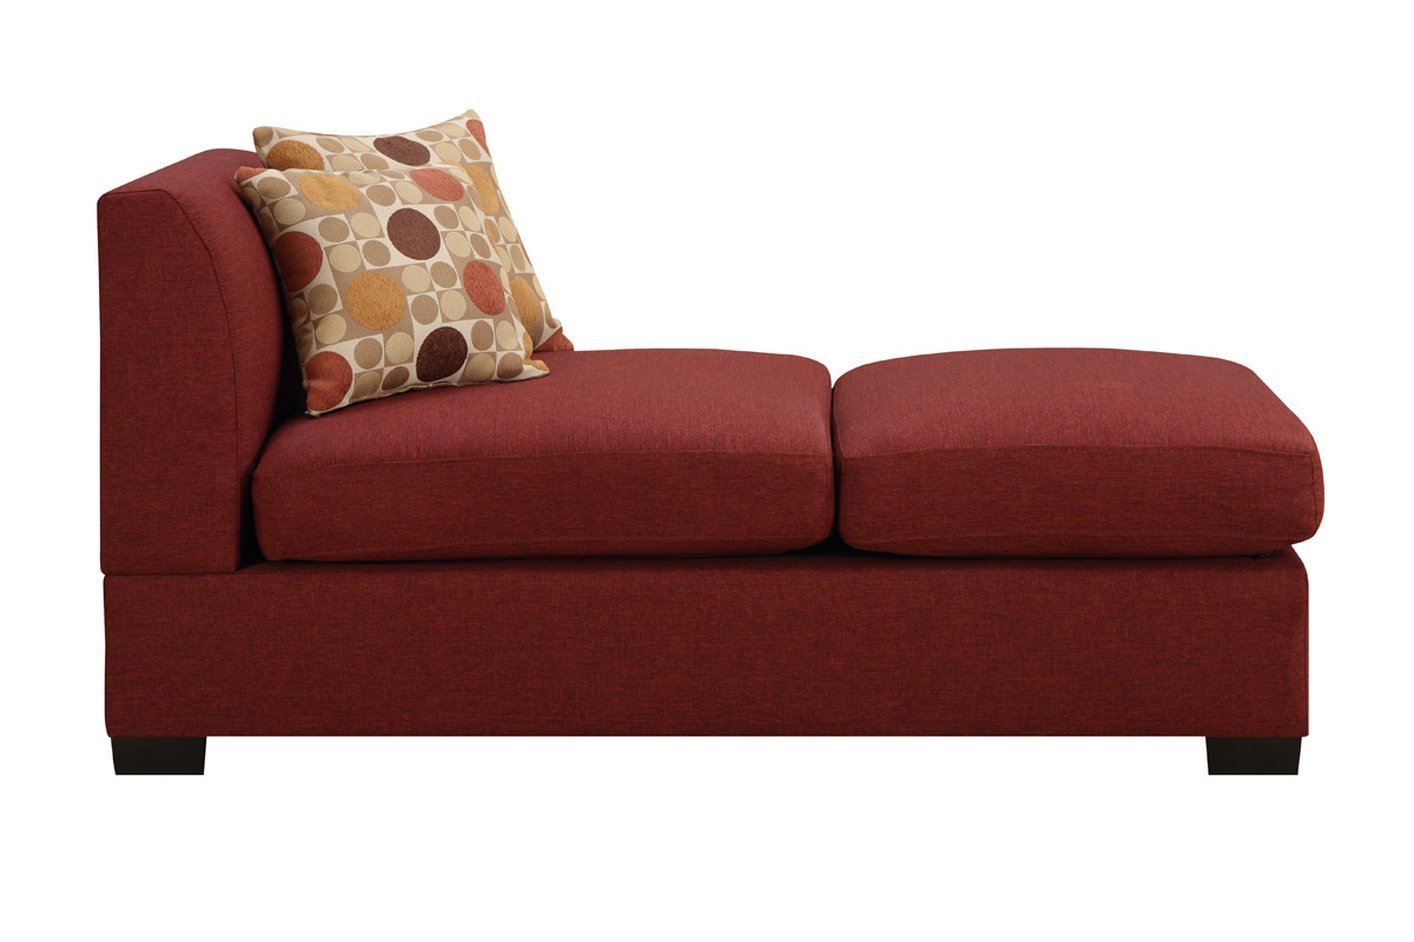 Red Fabric Chaise Lounge - Steal-A-Sofa Furniture Outlet Los Angeles CA